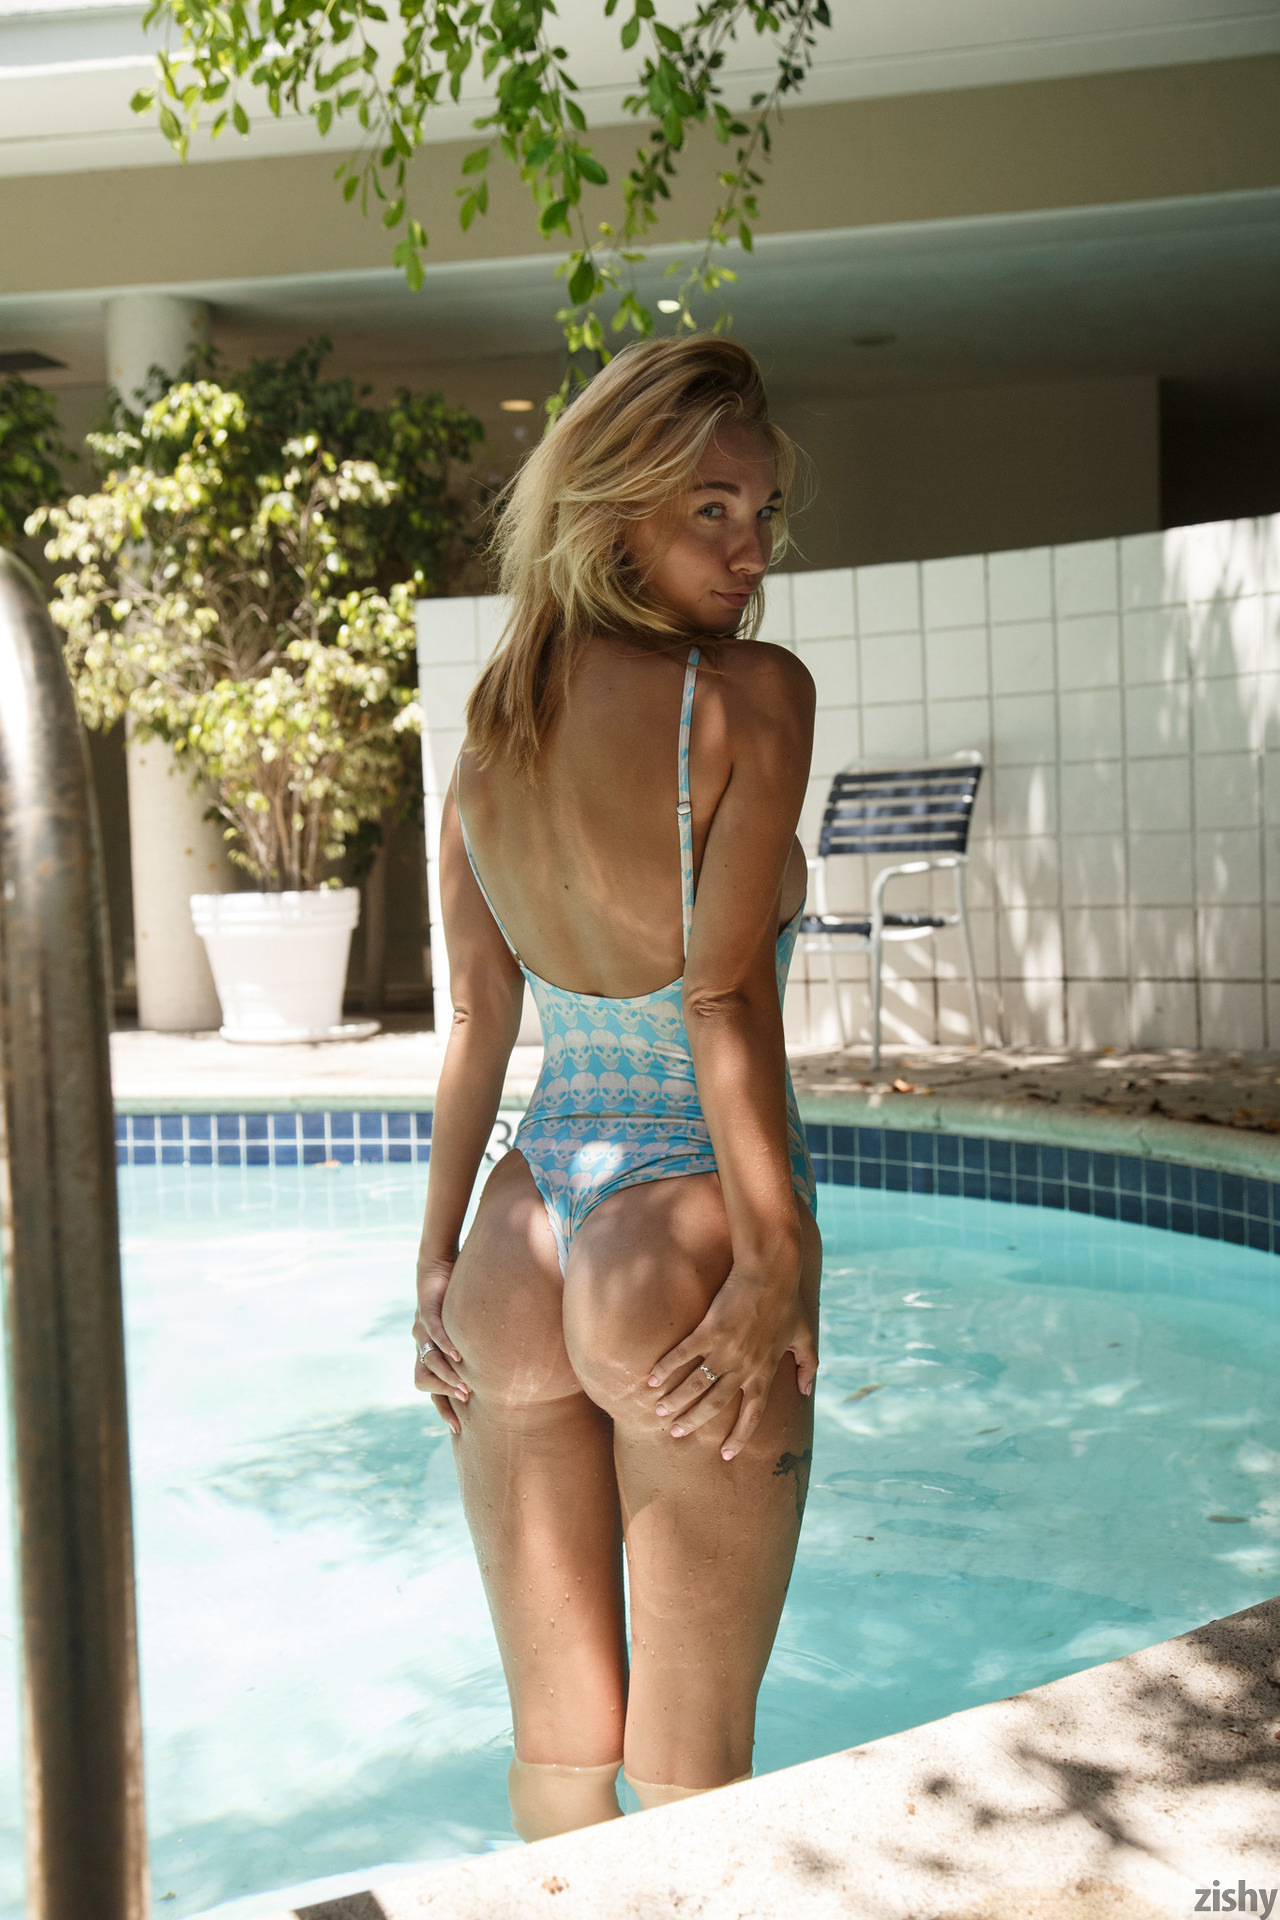 Lily Ivy Poolside Feminism 0074